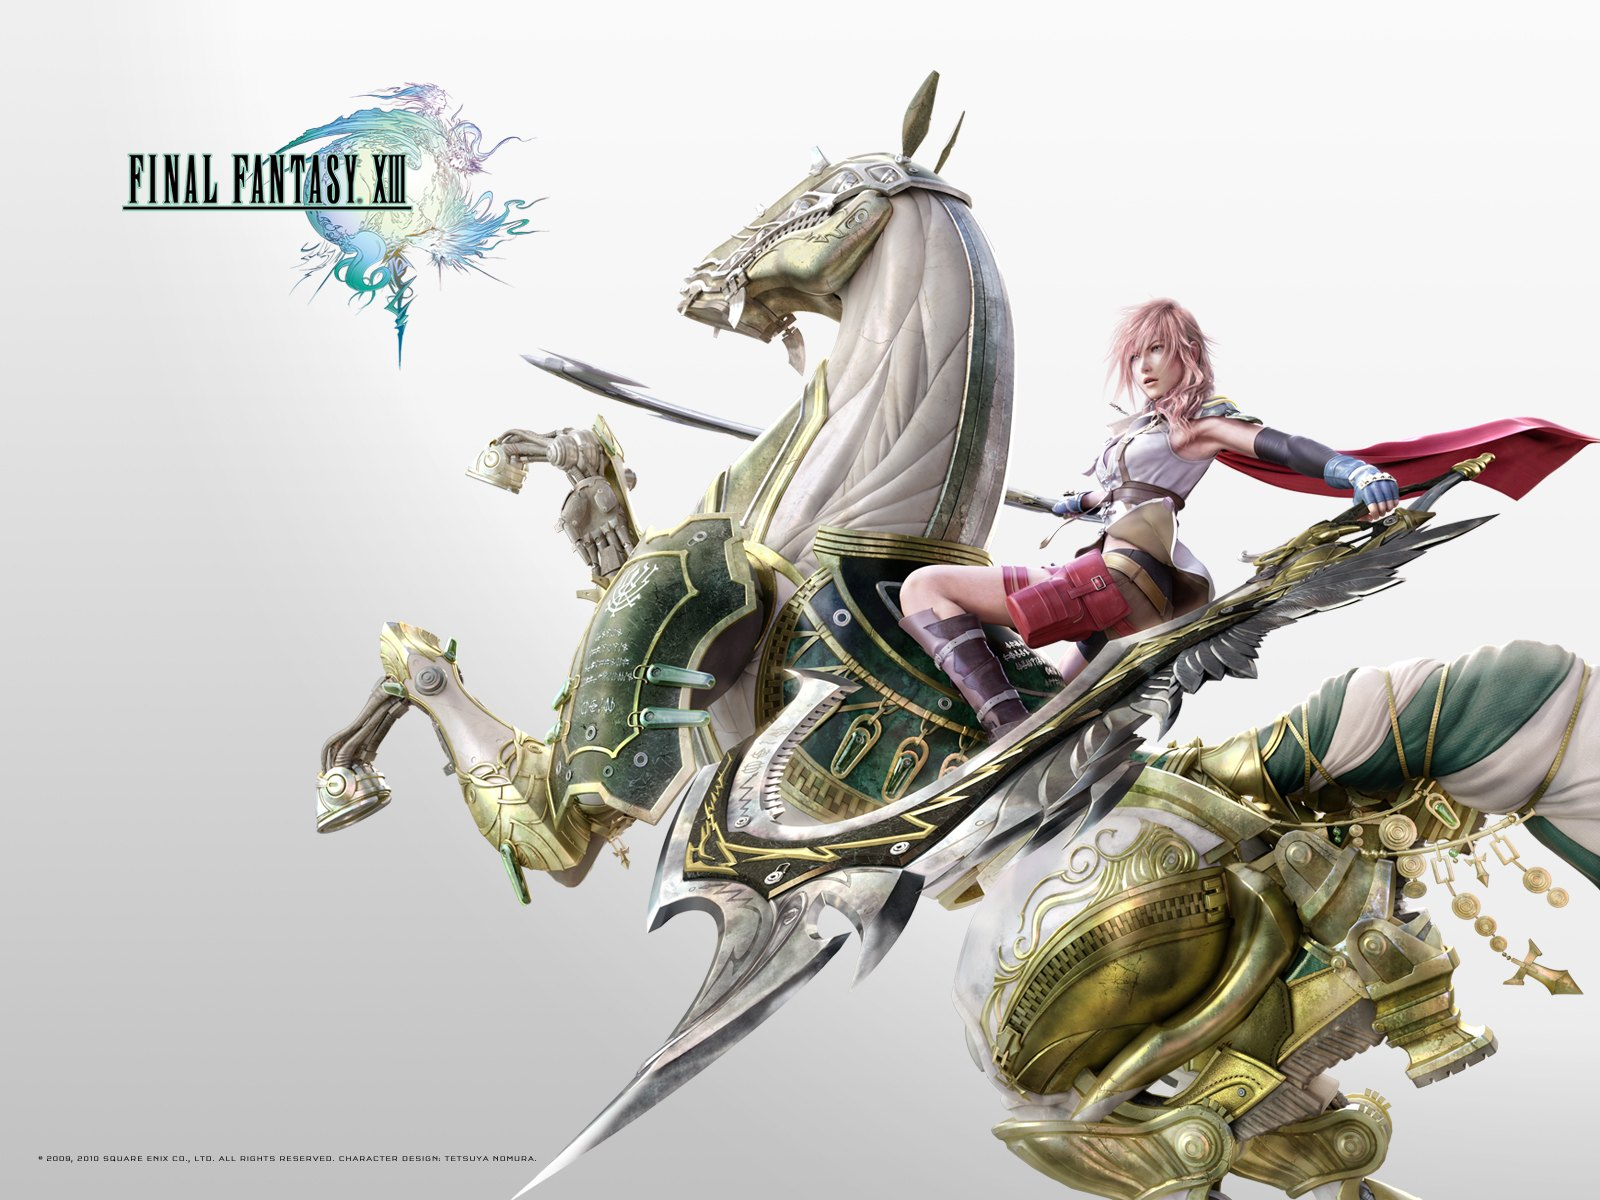 FF XIII Wallpaper   Final Fantasy XIII Wallpaper 32680106 1600x1200